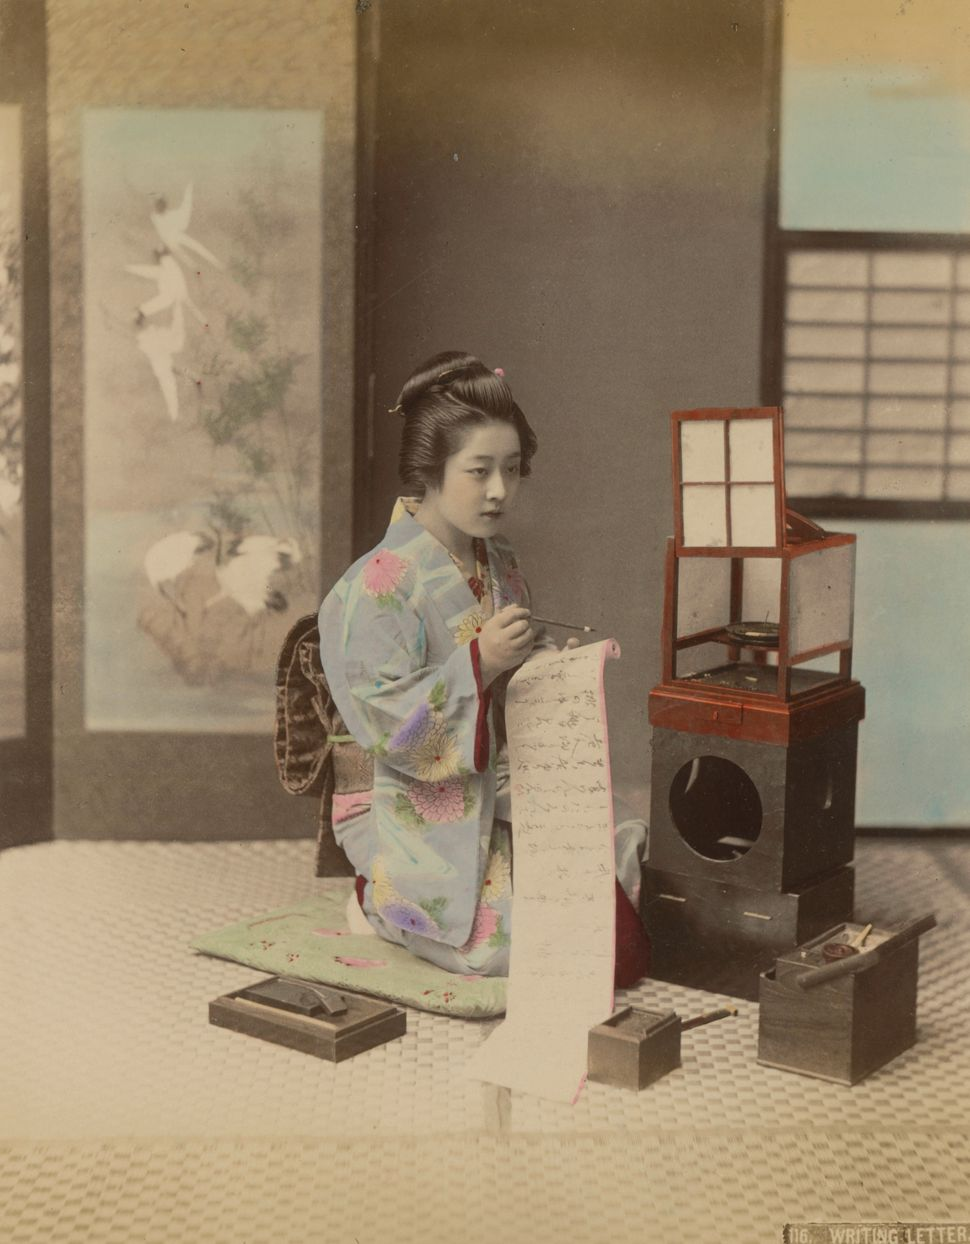 Color in japanese art - From The Late 19th Century To The Early 20th Century Japanese Photographers Were Doing Amazing Things With Color